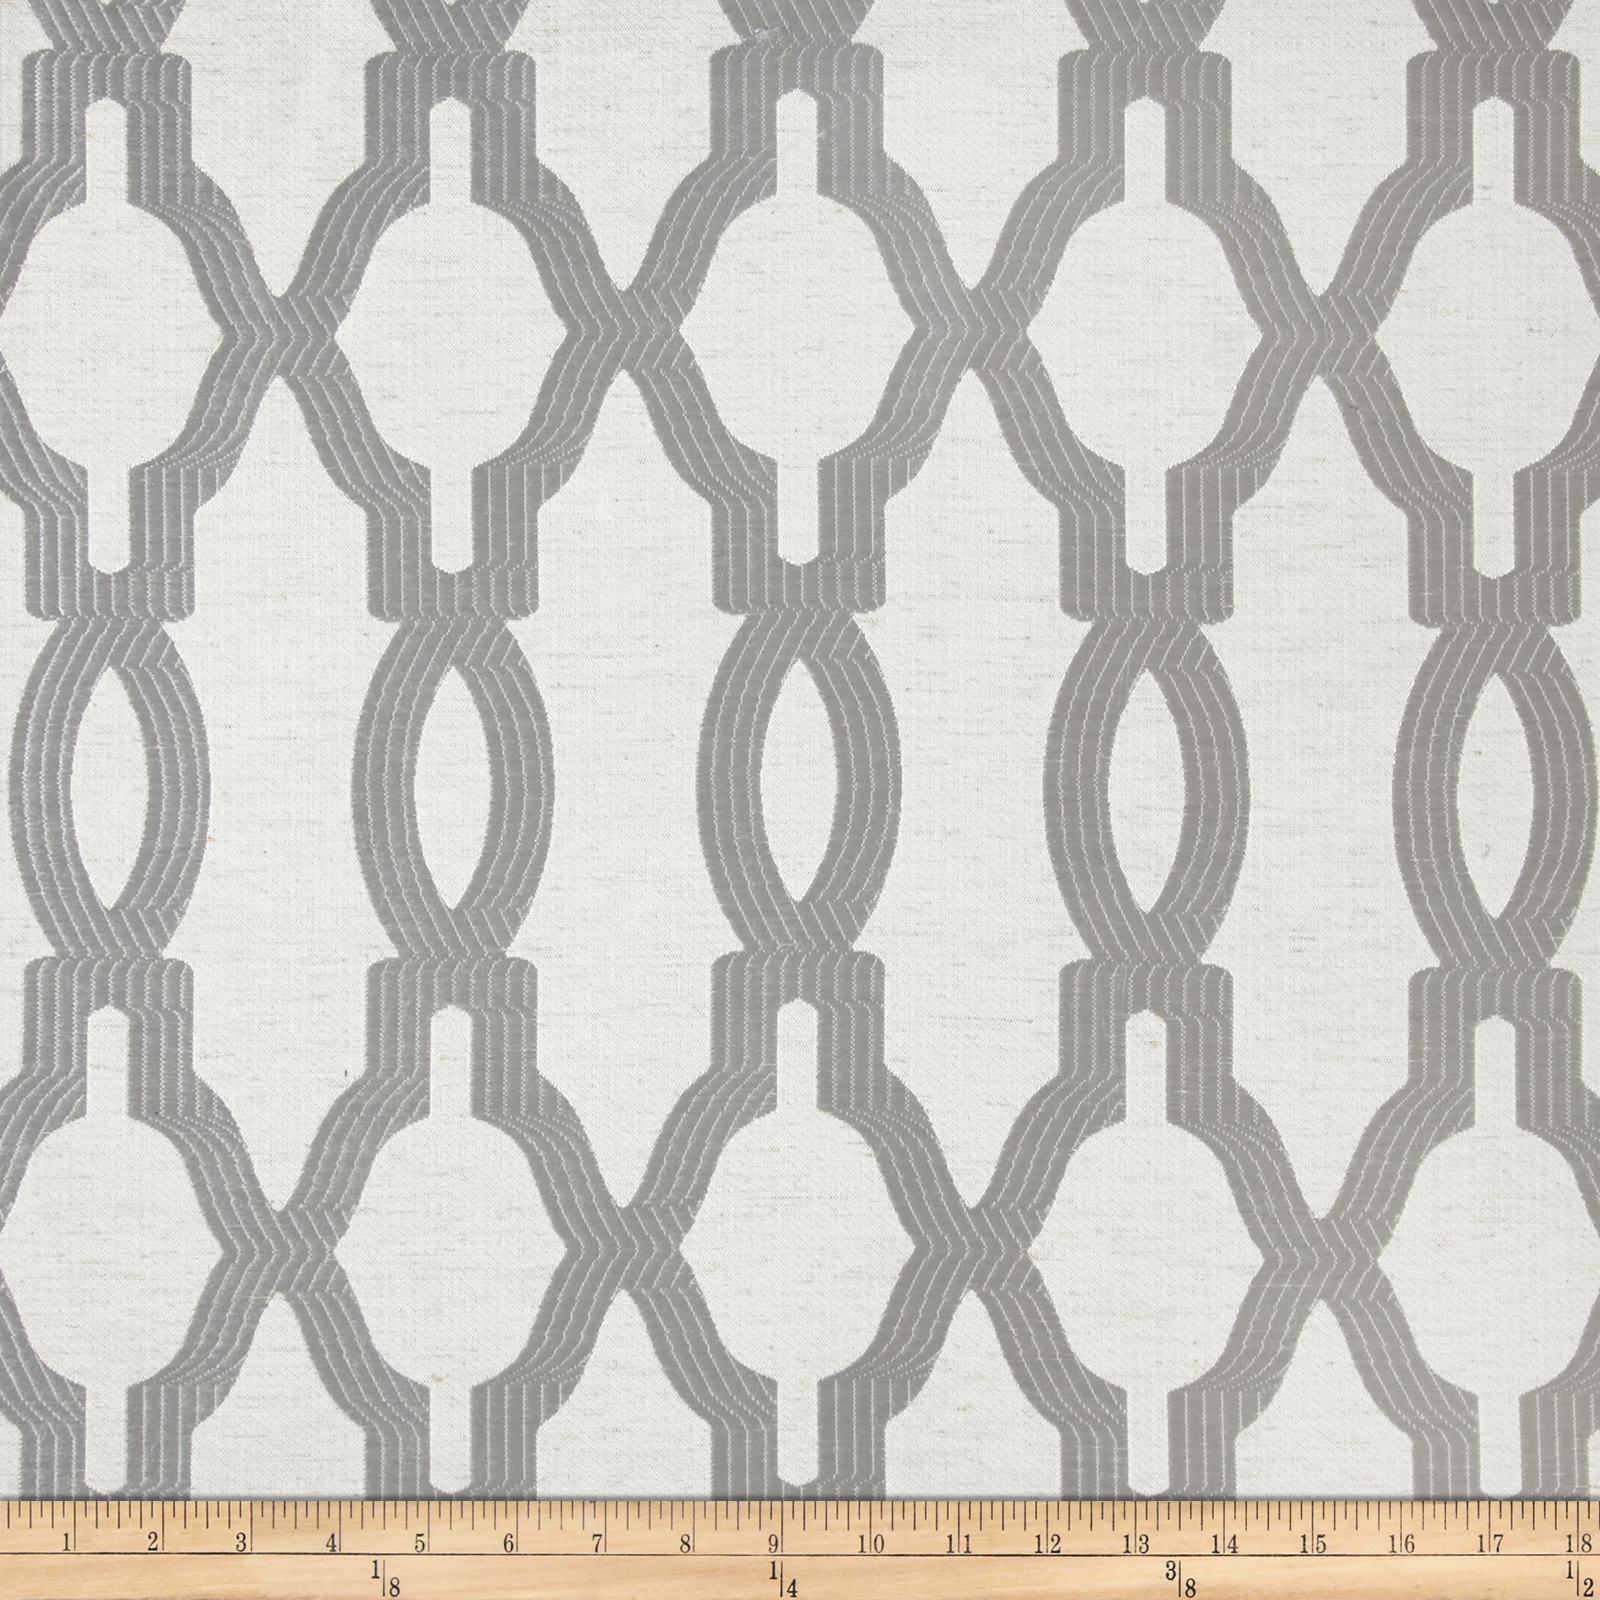 Eroica Yorkshire Jacquard Platinum Fabric by Eroica in USA